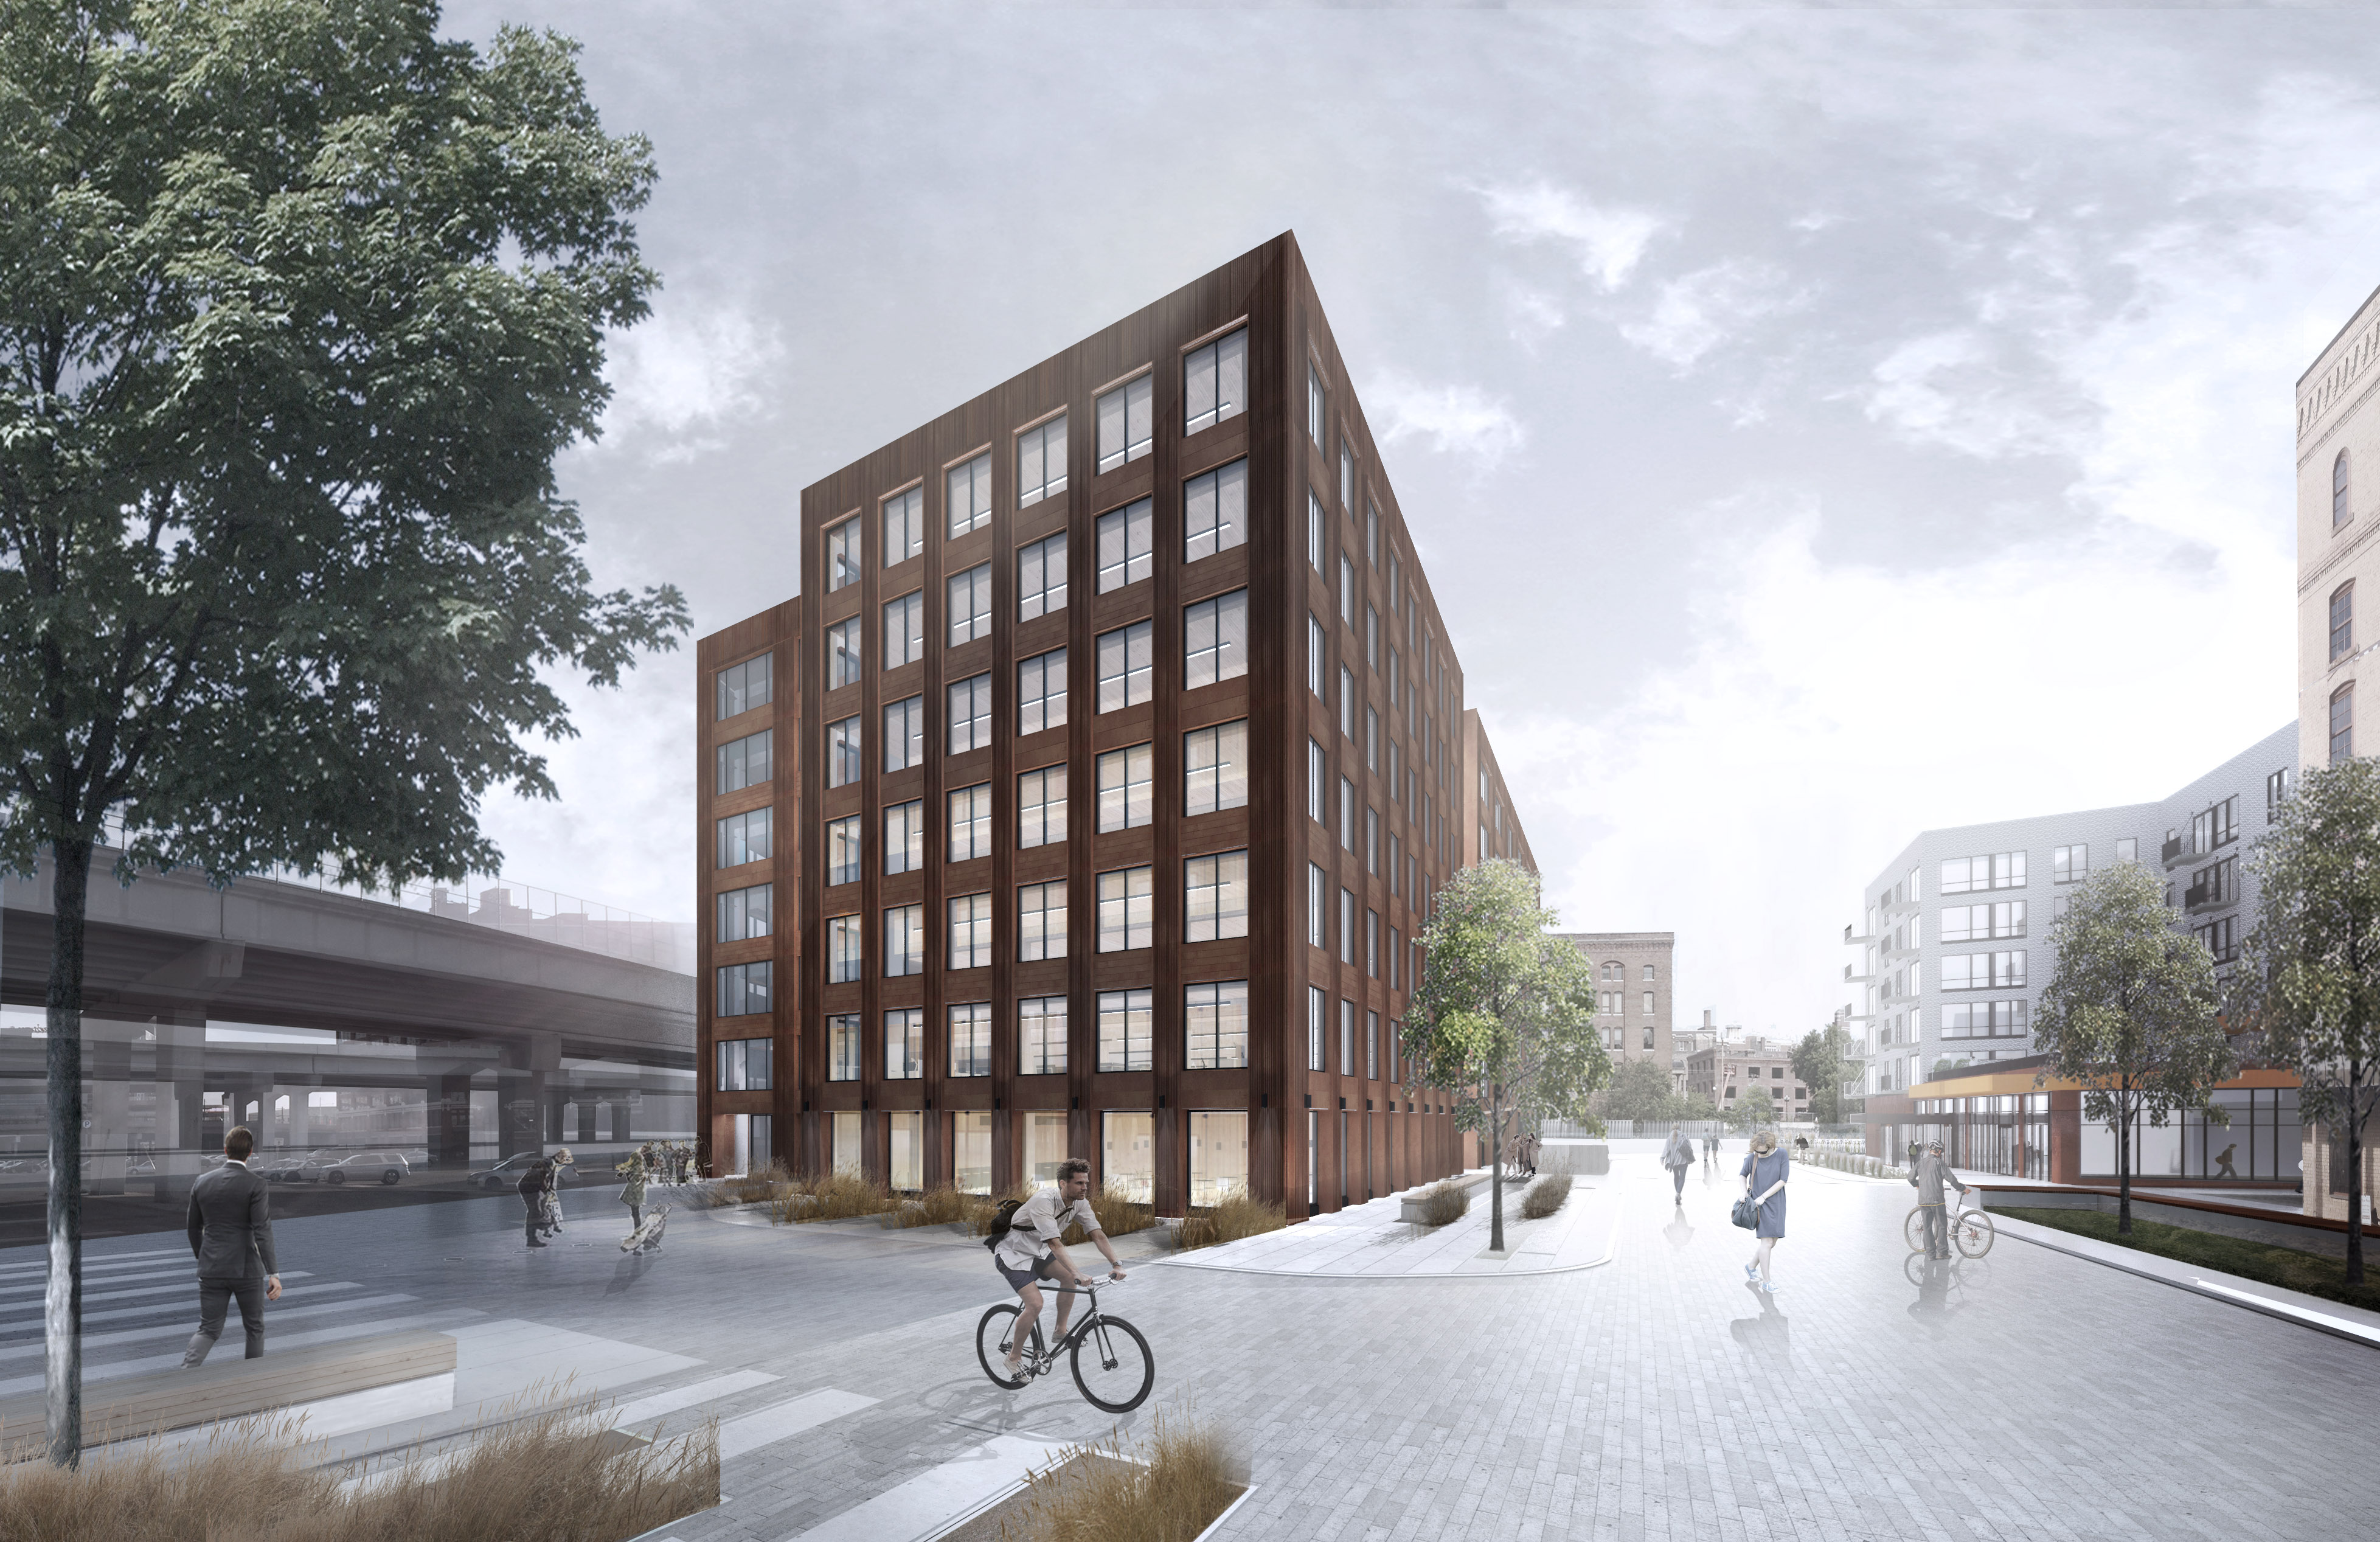 Hines' T3 Minneapolis, an innovative 224,000-square-foot timber office building schedule to open this fall in Minneapolis' North Loop neighborhood that will be the first tall building to employ naturally engineered, renewable wood for its exterior and interior.